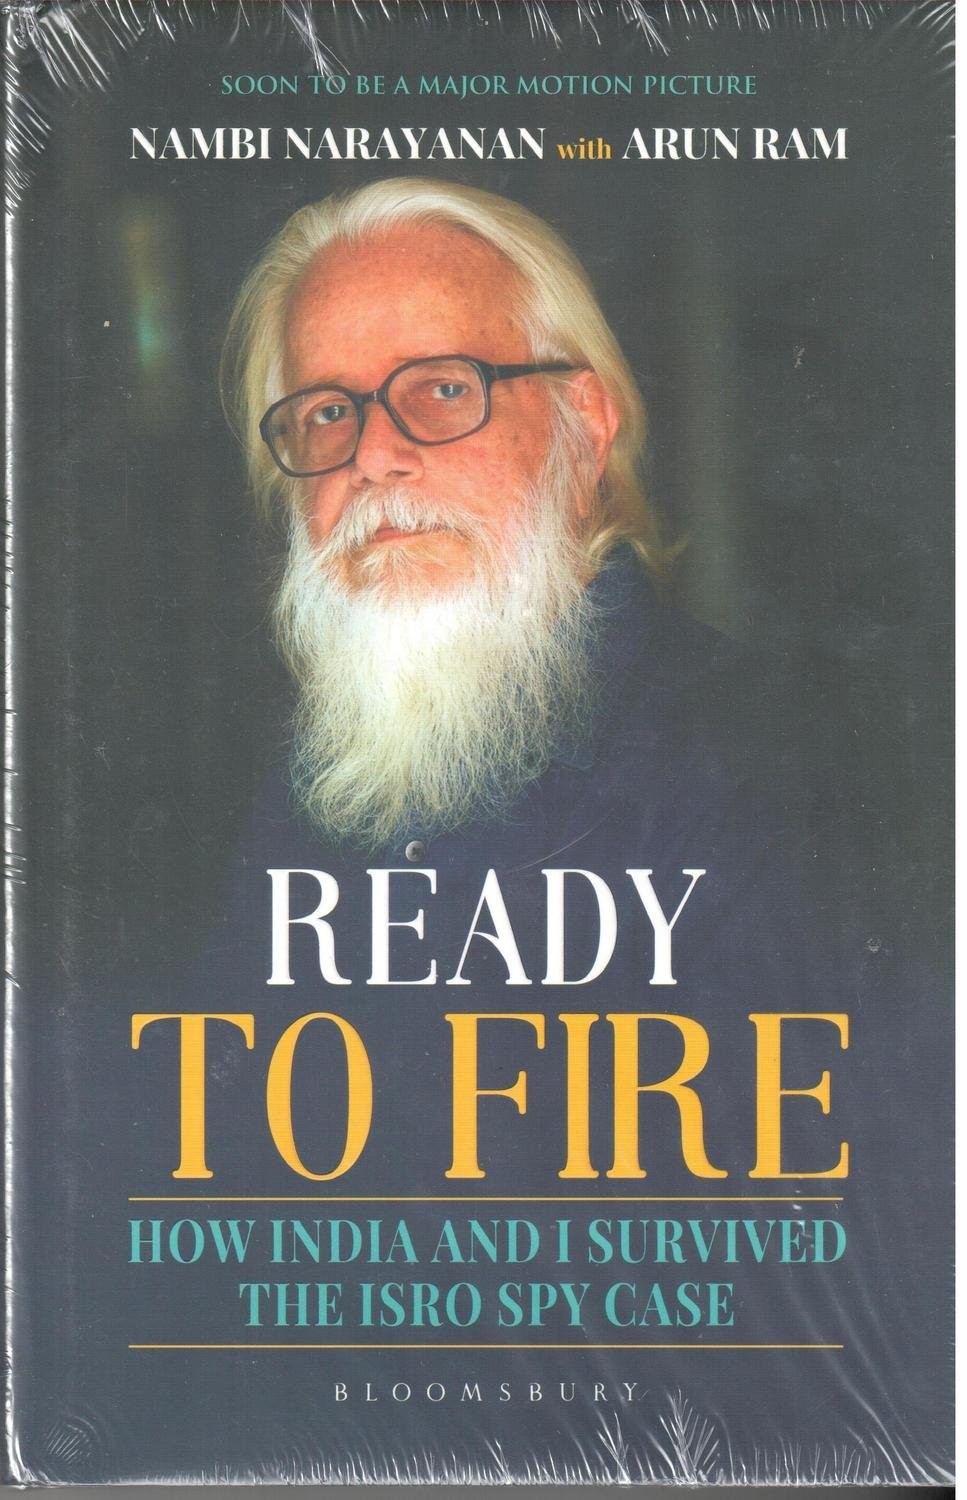 Ready To Fire How India and I Survived the ISRO Spy Case by Nambi Narayanan with Arun Ram